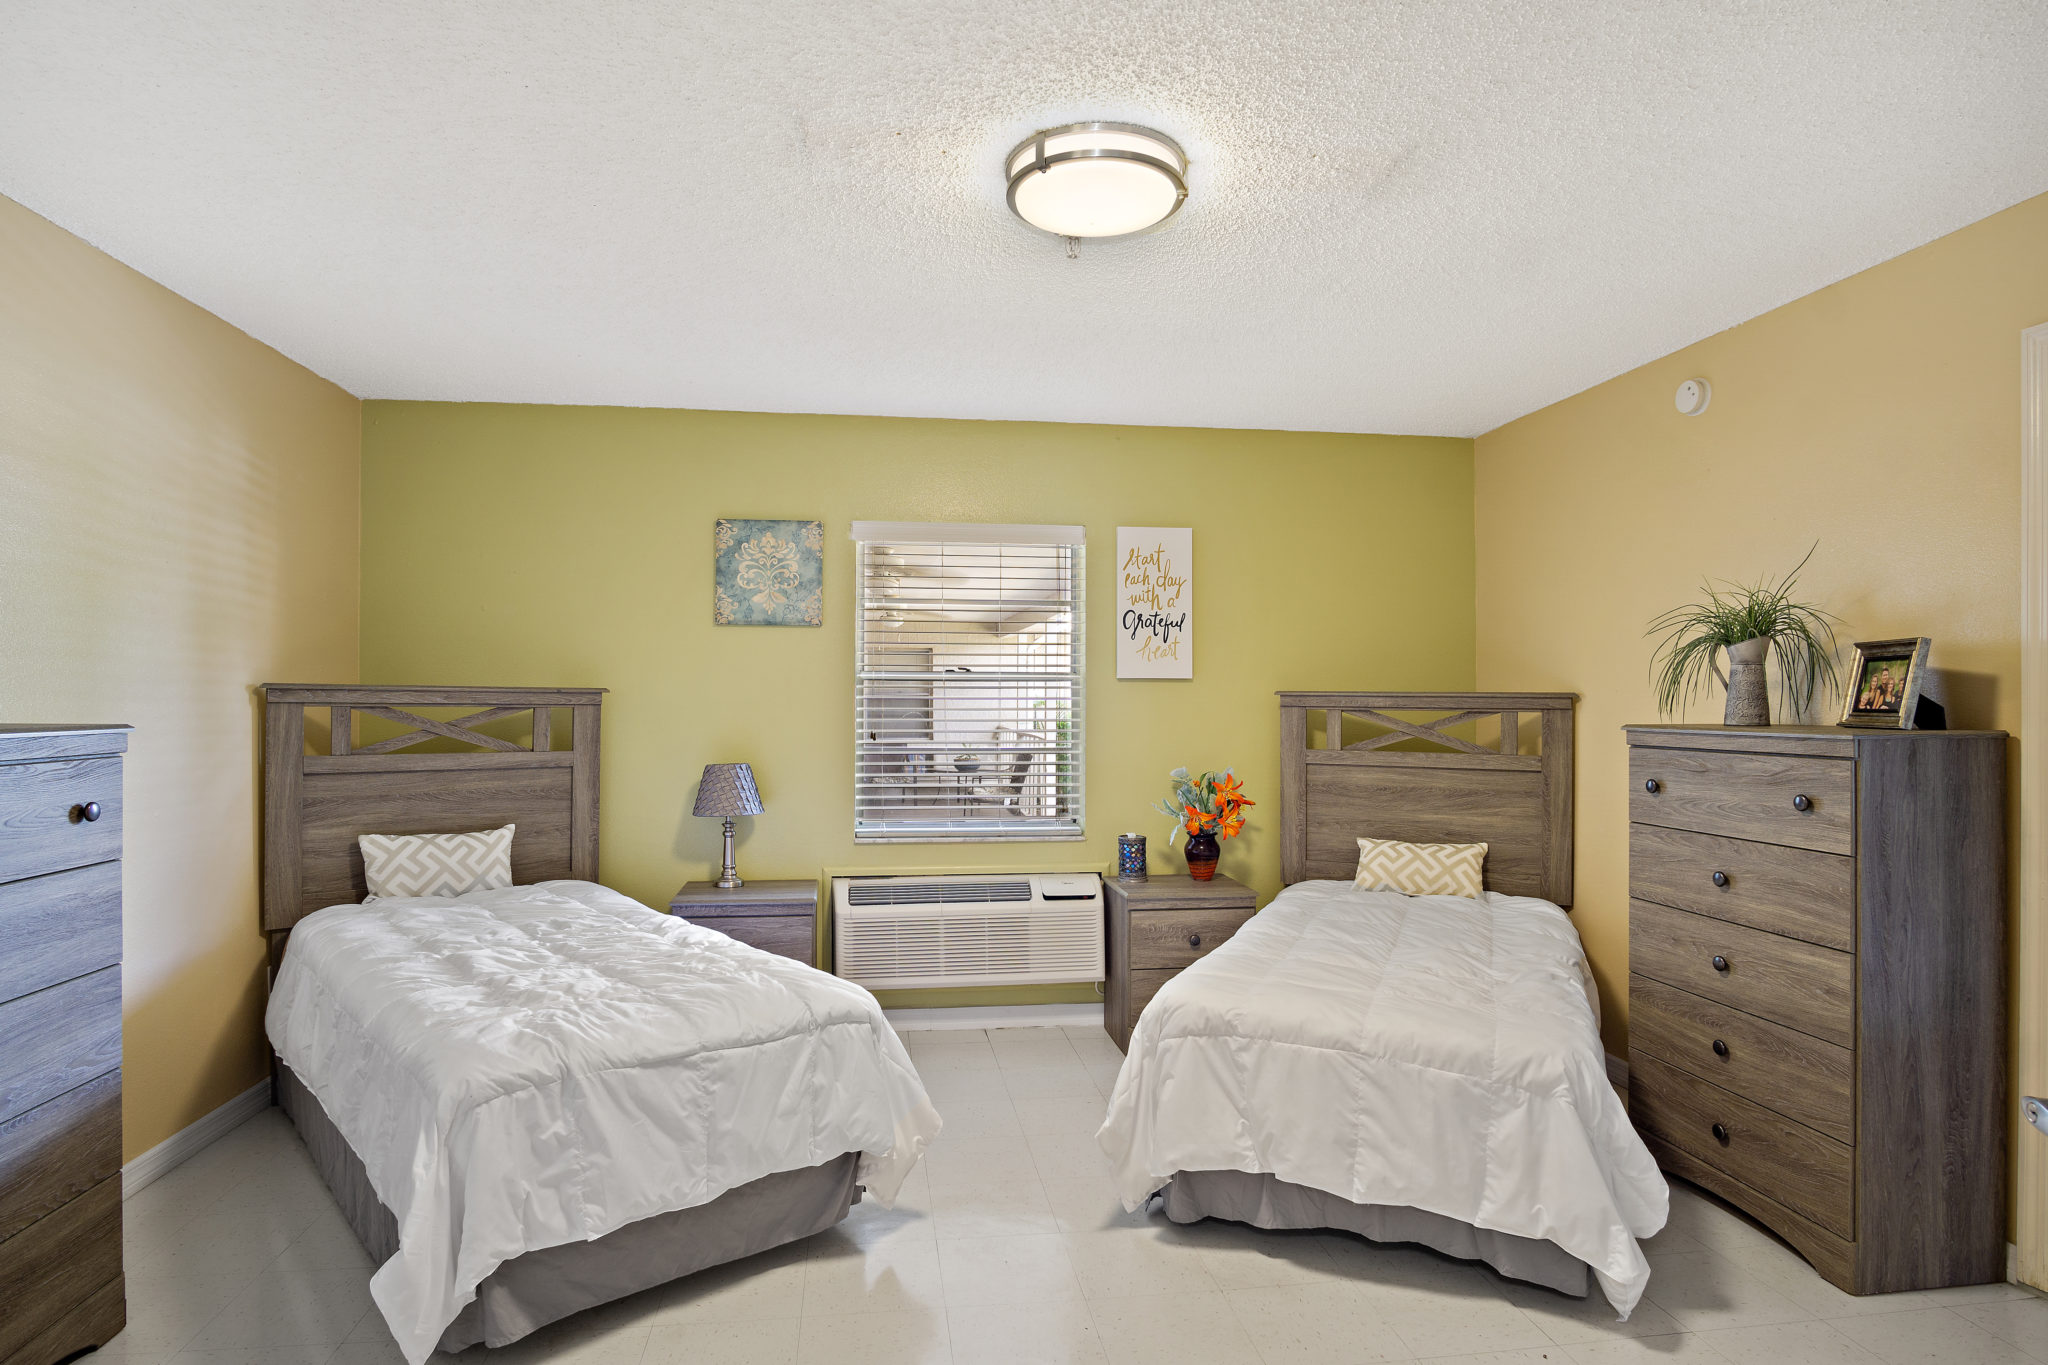 Bright room with two beds